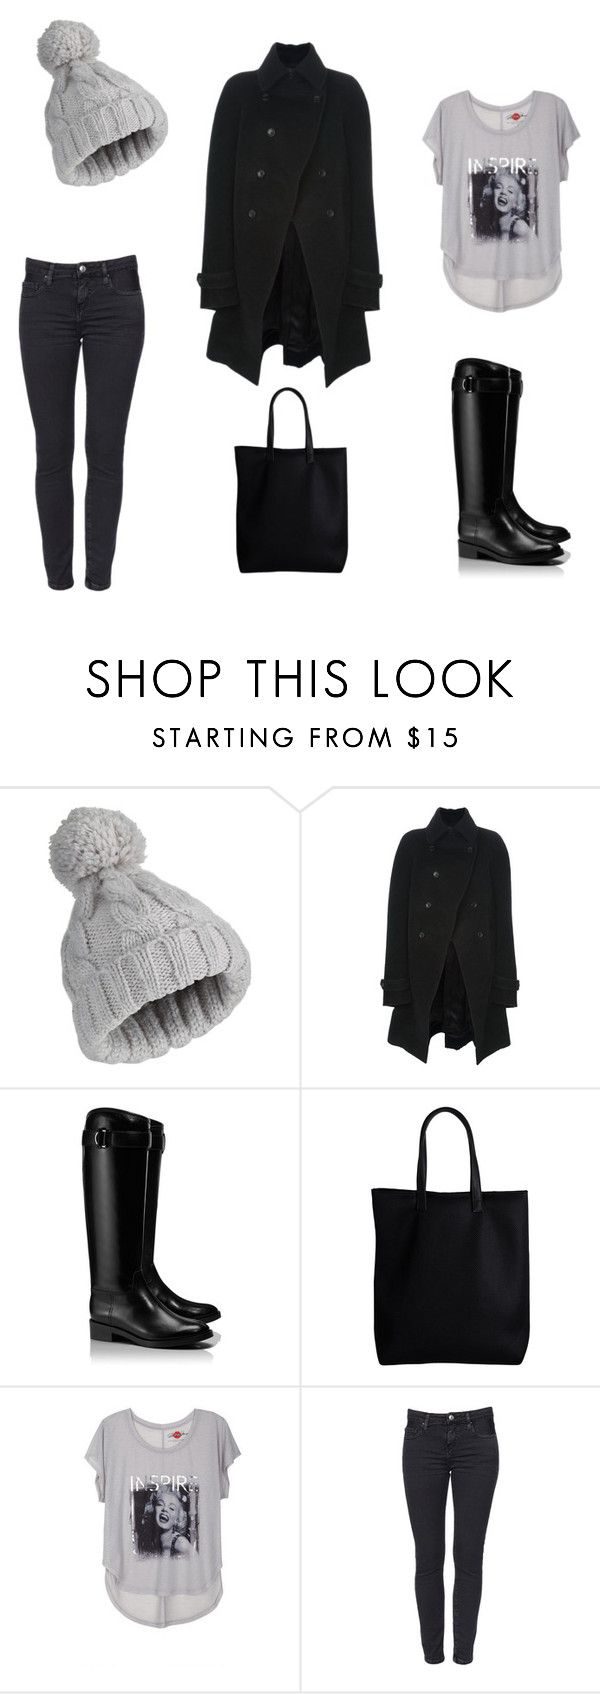 Casual by leenap on Polyvore featuring Junya Watanabe, Tory Burch, Pieces and Miss Selfridge